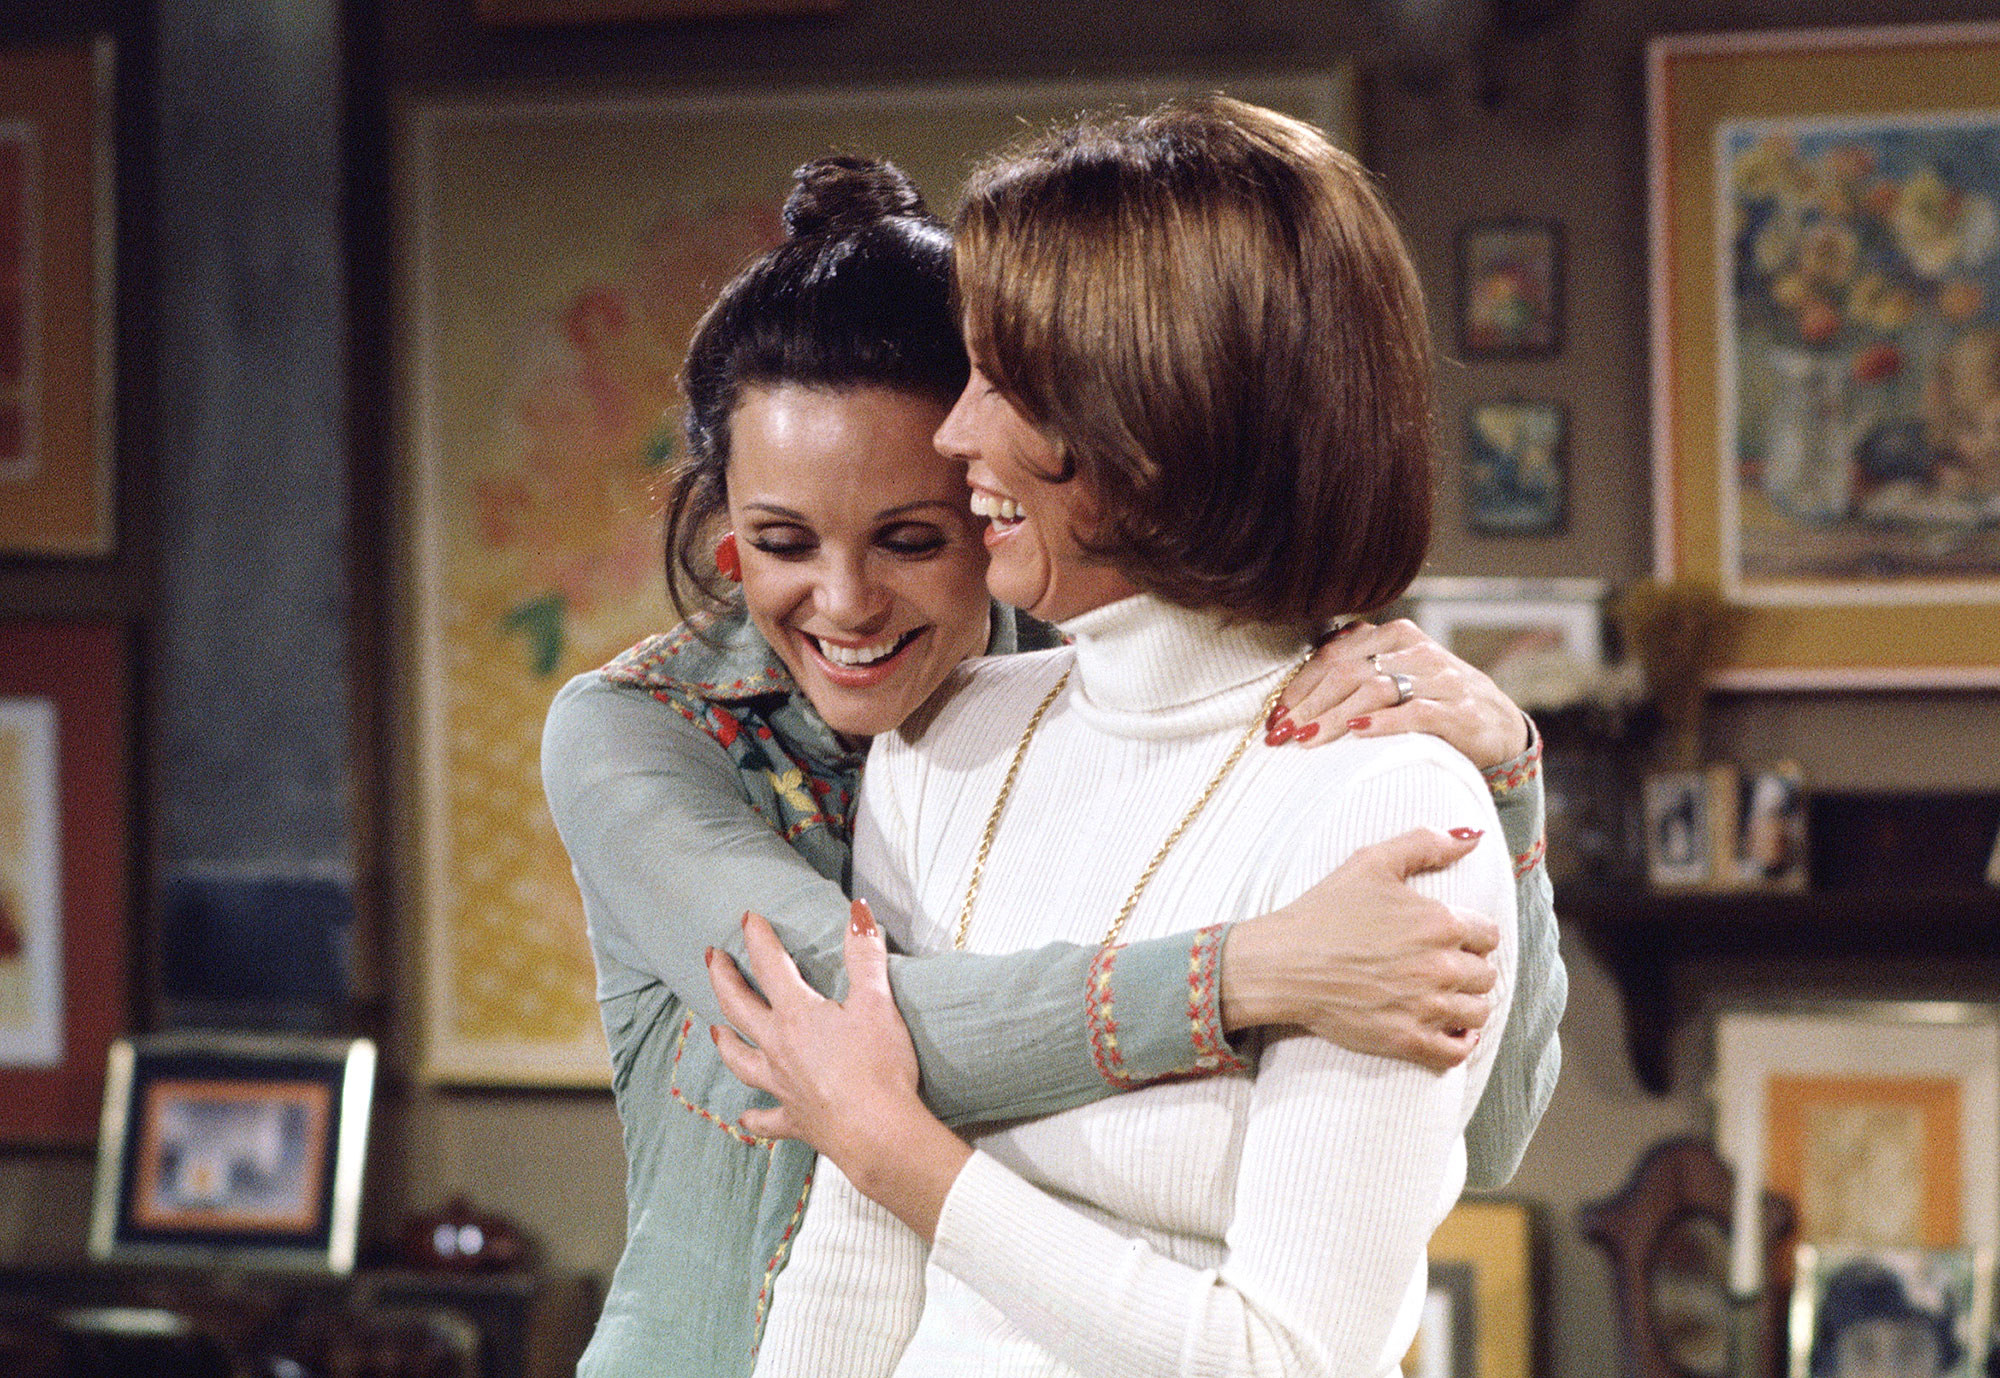 "LOS ANGELES - MARCH 10: RHODA, episode ""Along Comes Mary."" Featuring (from left): Valerie Harper (as Rhoda Morganstern) and Mary Tyler Moore (as Mary Richards). Initial broadcast on March 10, 1975. (Photo by CBS via Getty Images)"